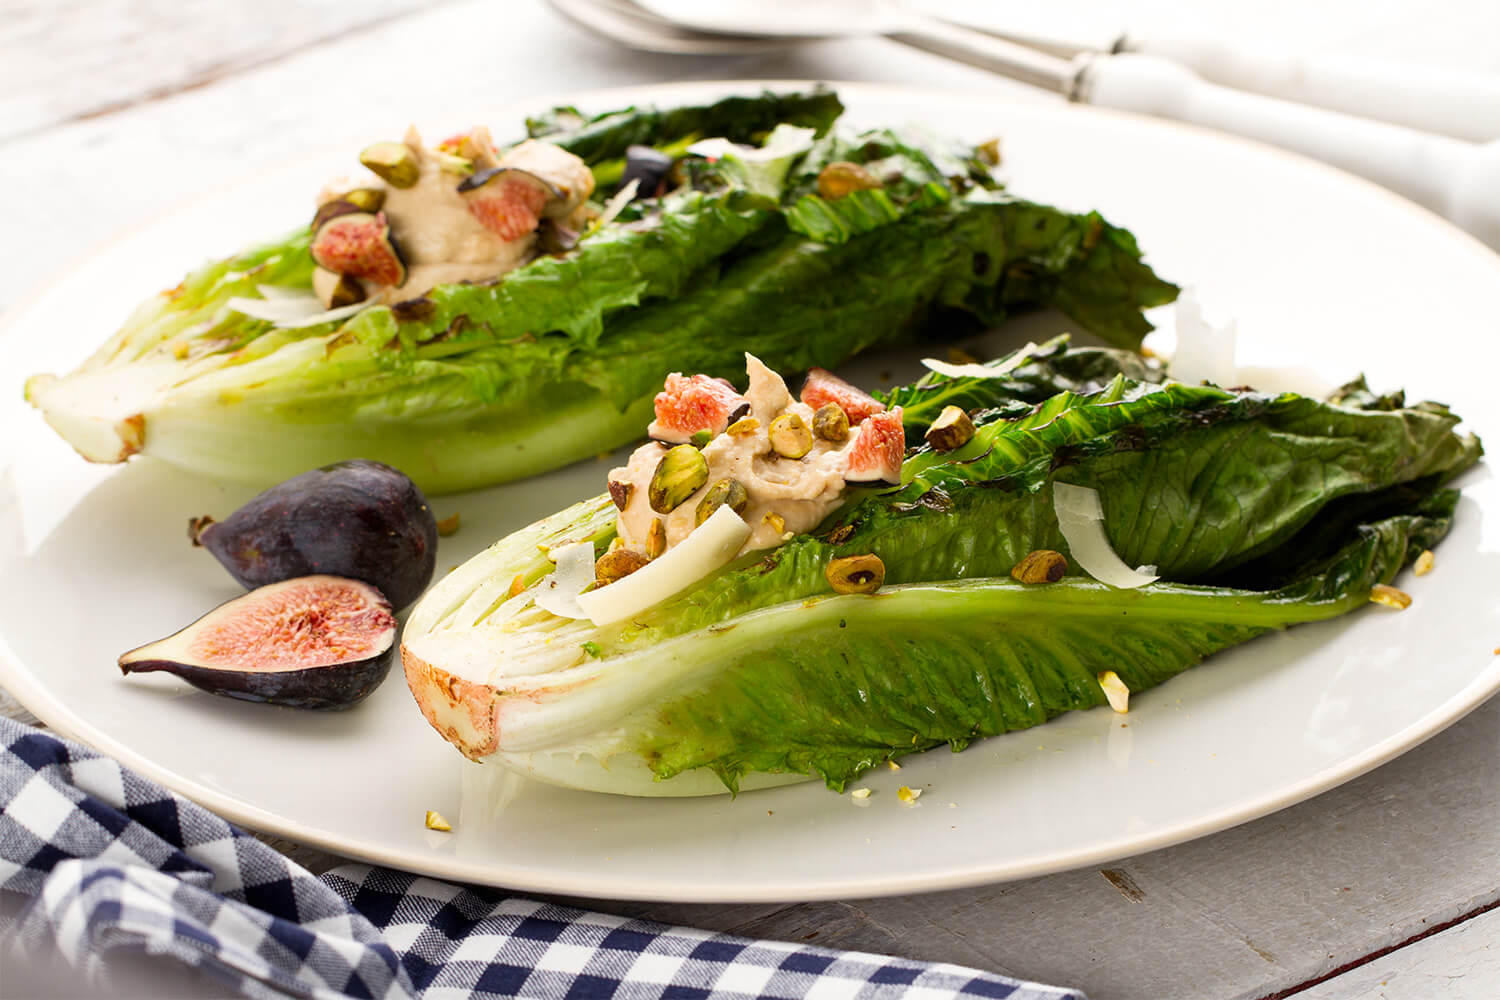 Grilled-Garlic-Romaine-Hearts.jpg